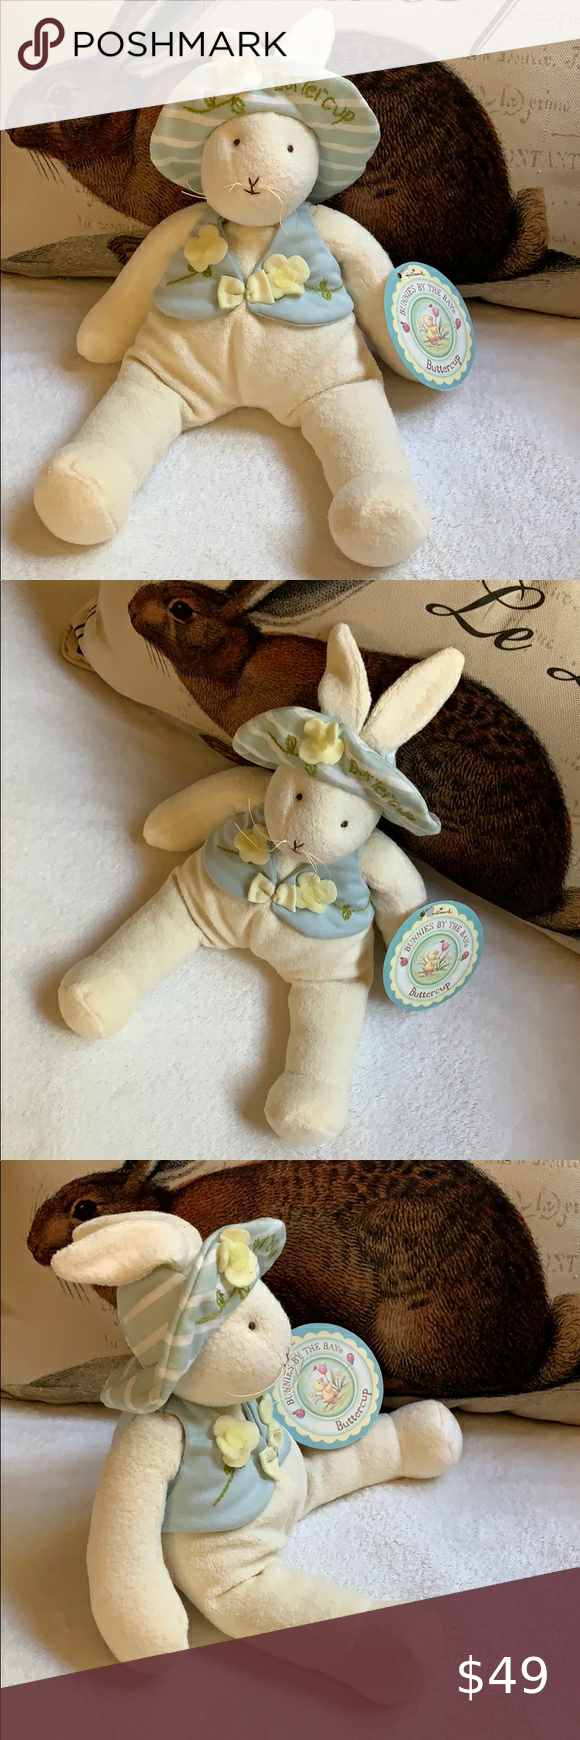 I just added this listing on Poshmark: Hallmark Bunnies By the Bay Happy Buttercup Easter. #shopmycloset #poshmark #fashion #shopping #style #forsale #Hallmark #Other